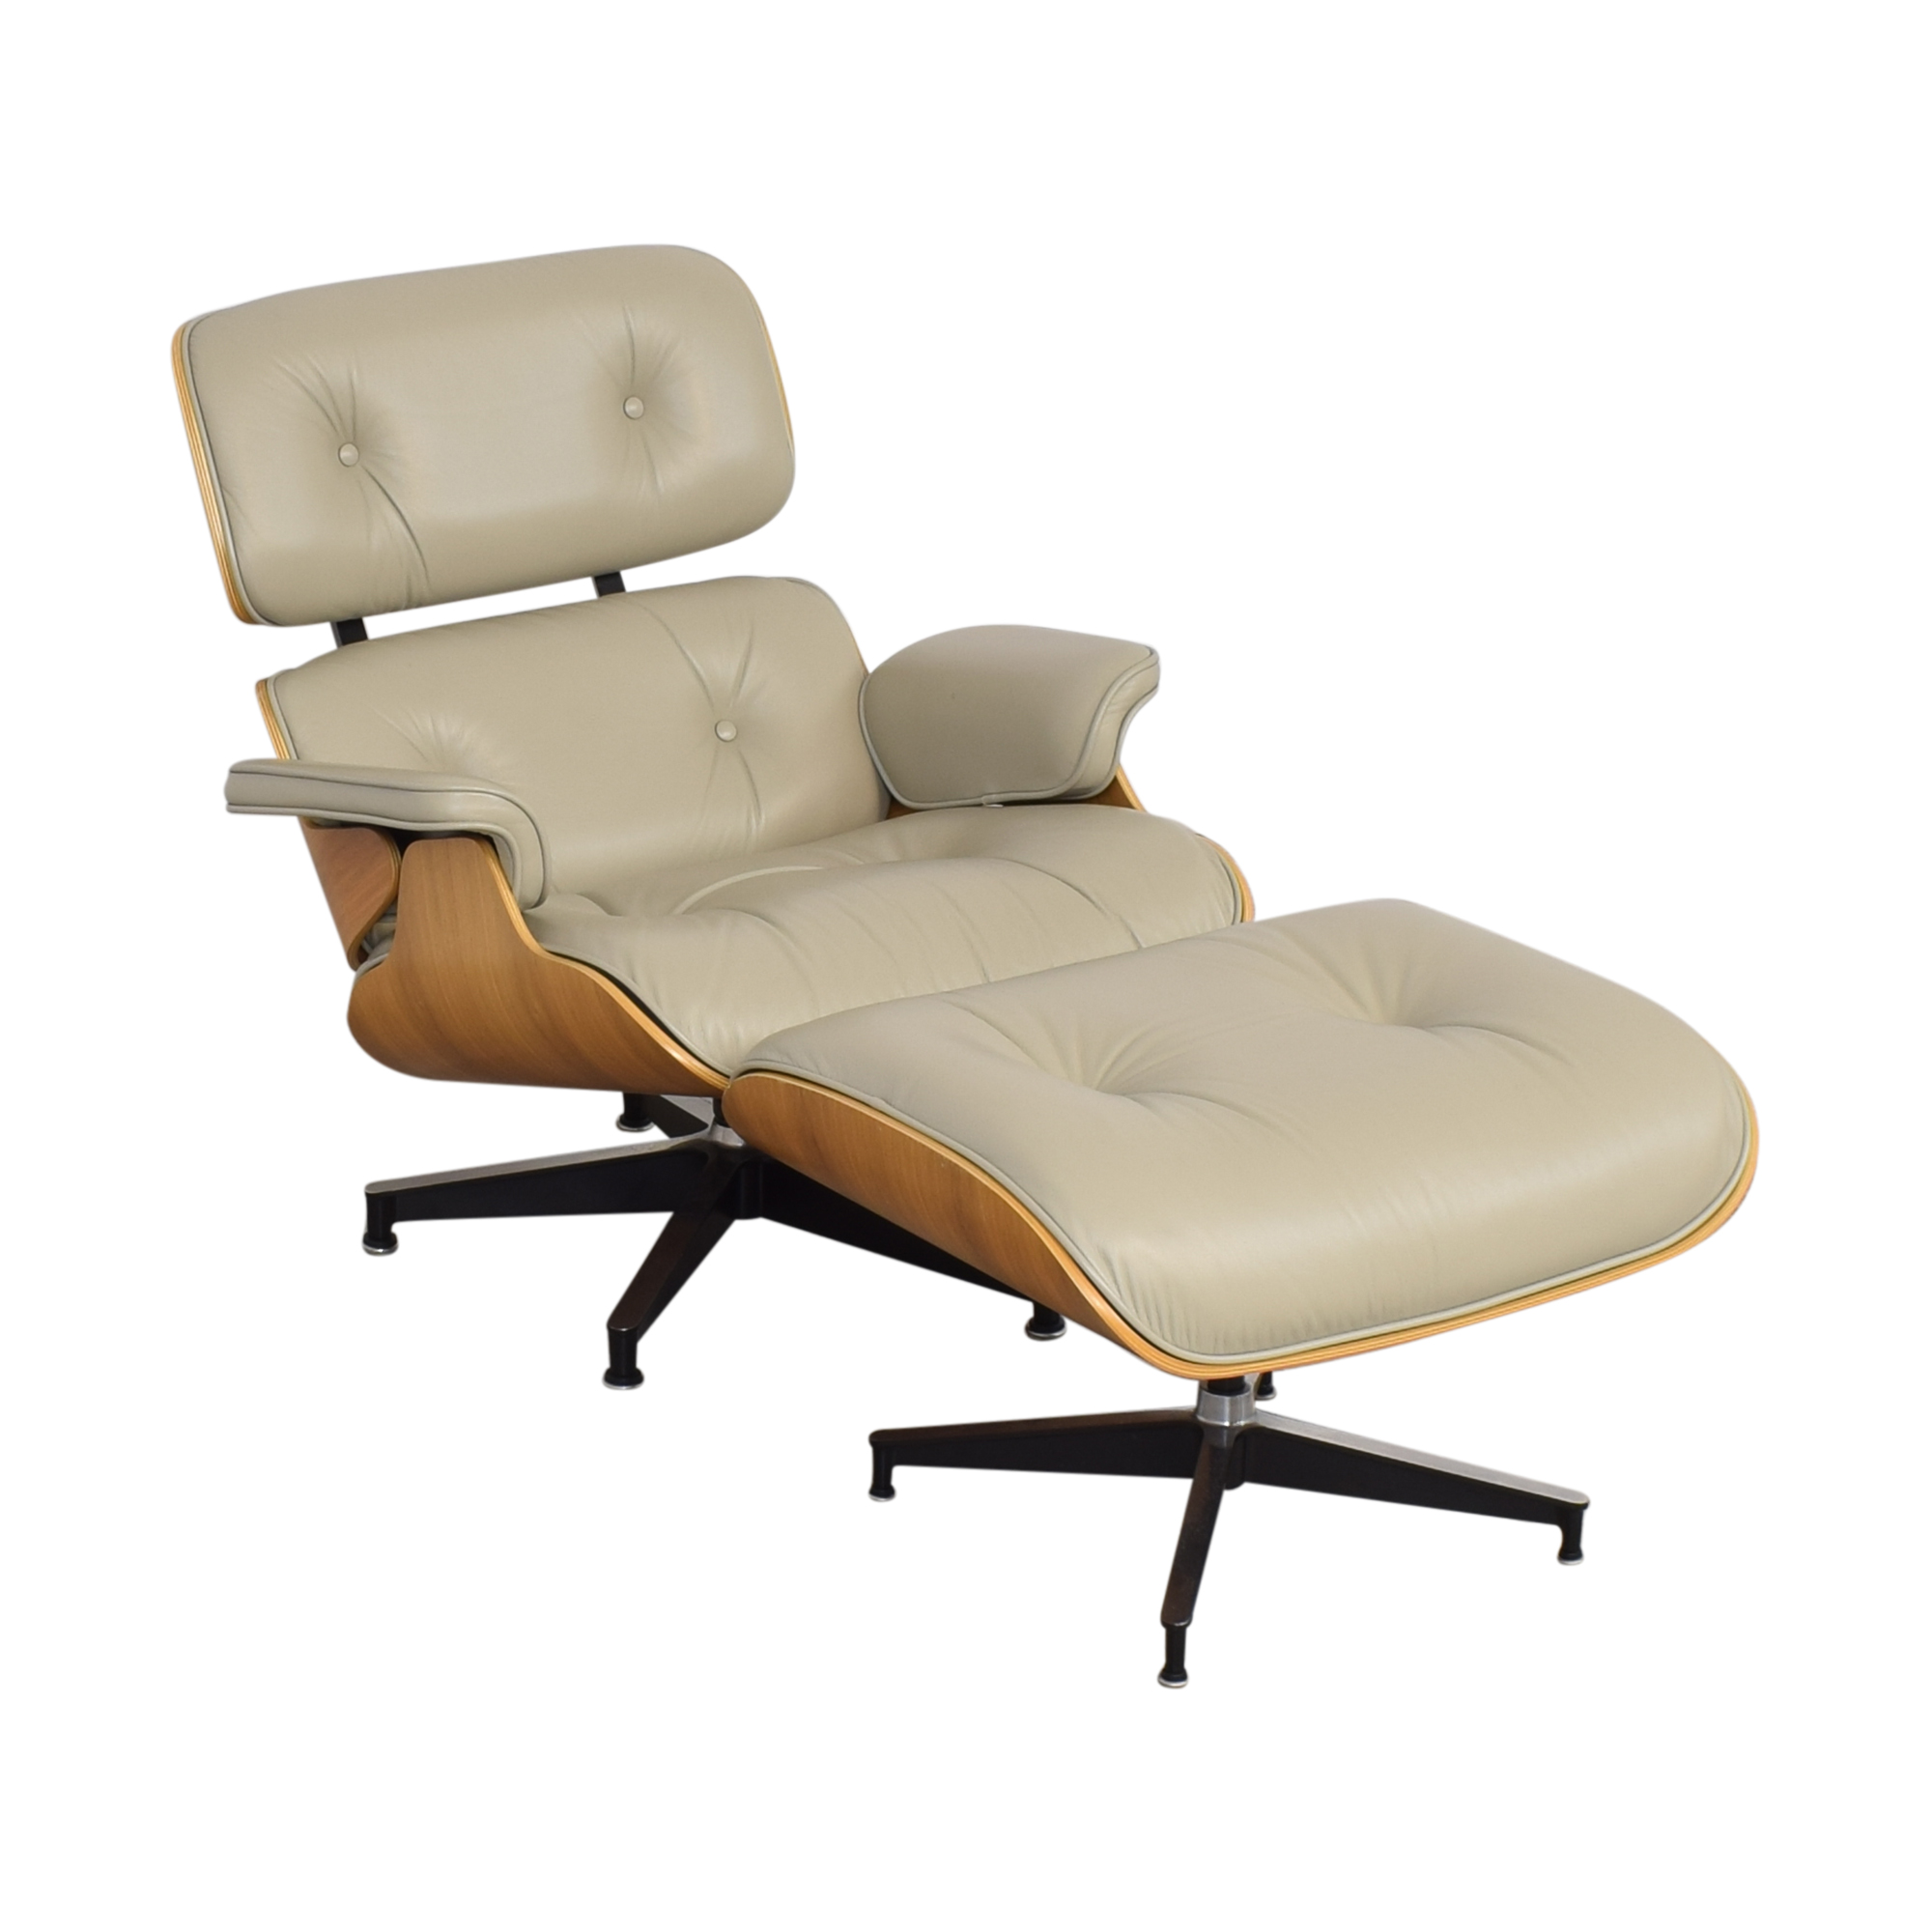 Herman Miller Herman Miller Eames Lounge Chair and Ottoman ct